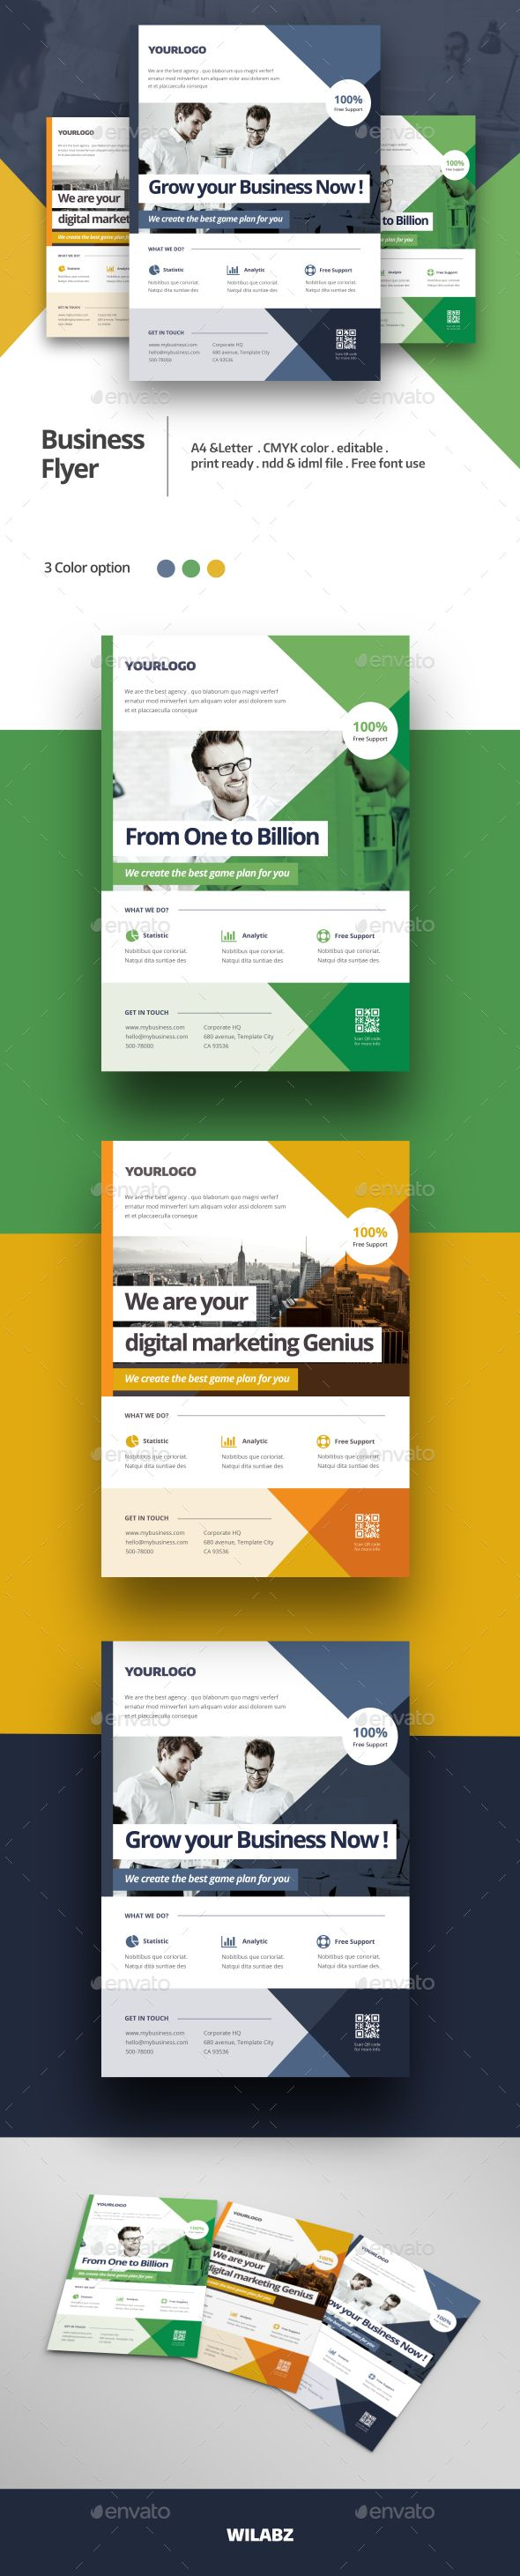 Business Flyer Template InDesign INDD. Download here: http ...